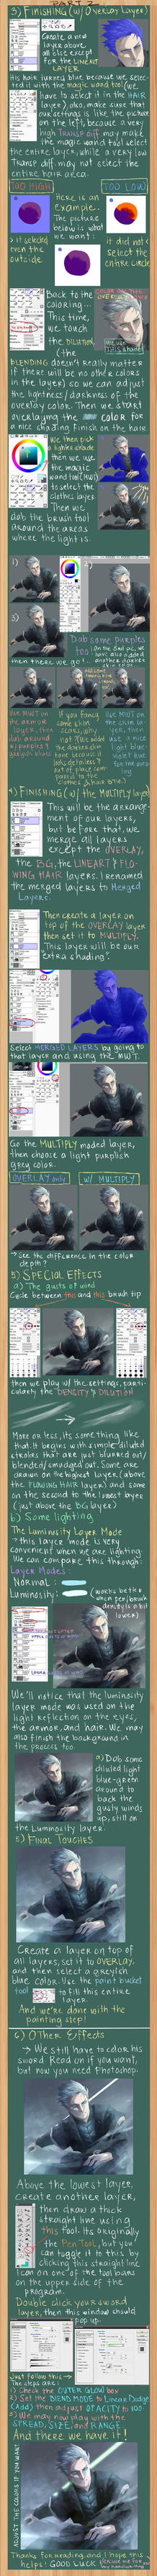 Coloring/Finishing Tutorial (SAI) PART 2 by d-oppelganger